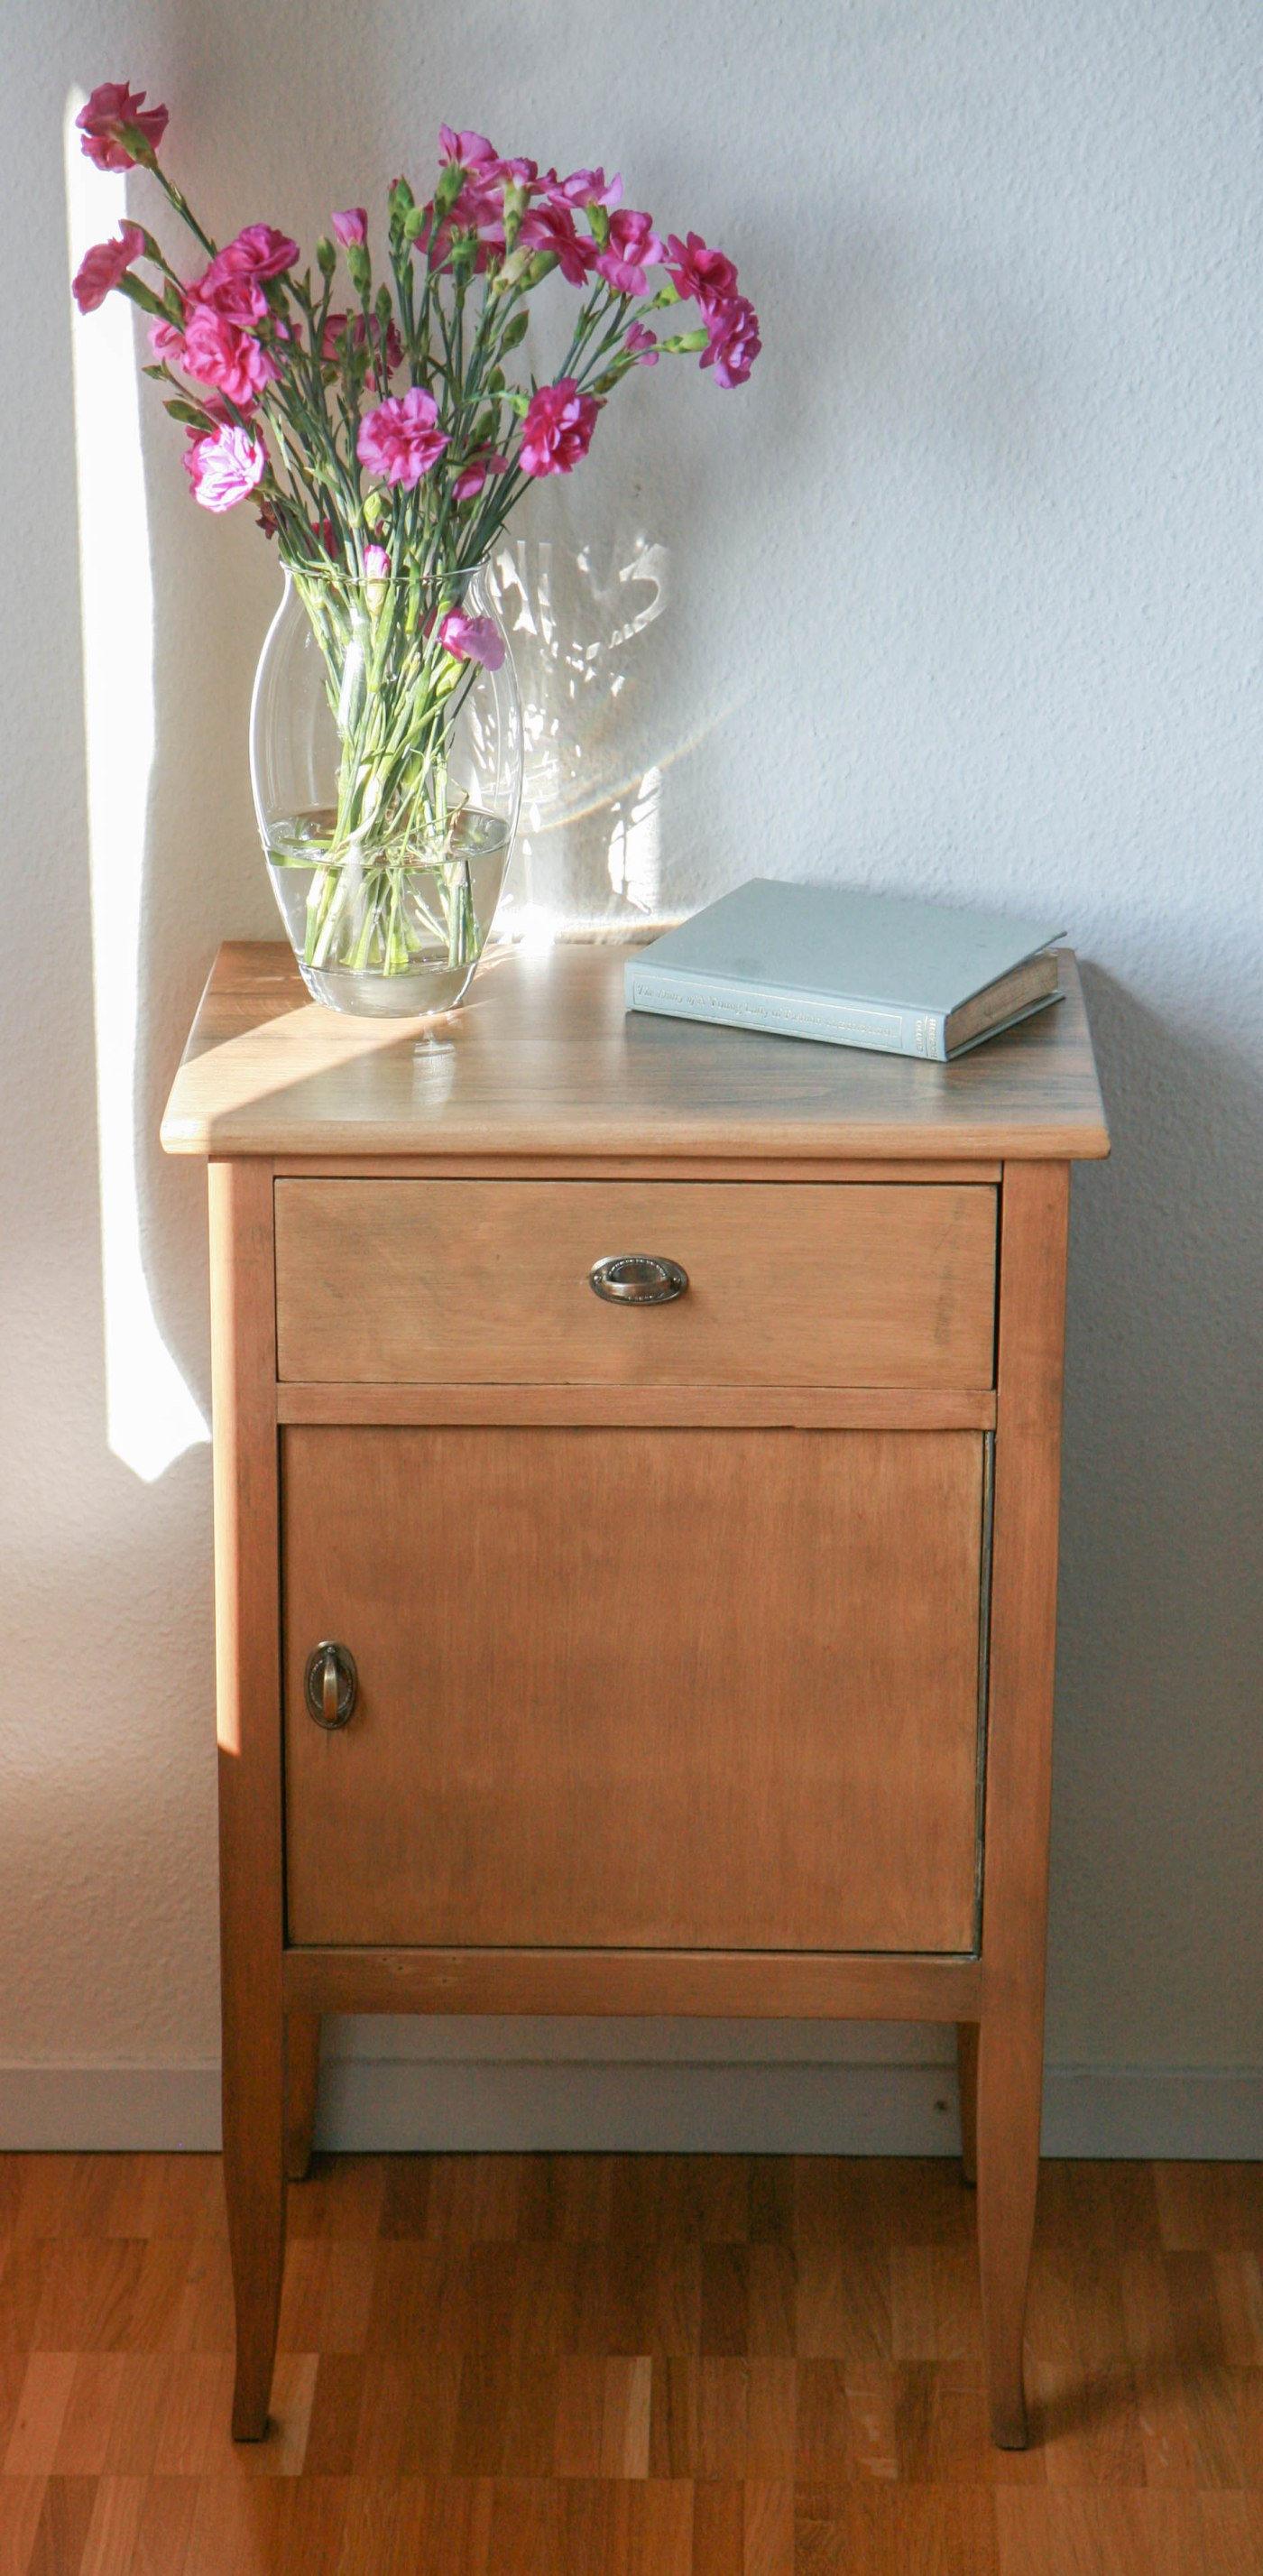 nightstand frontal